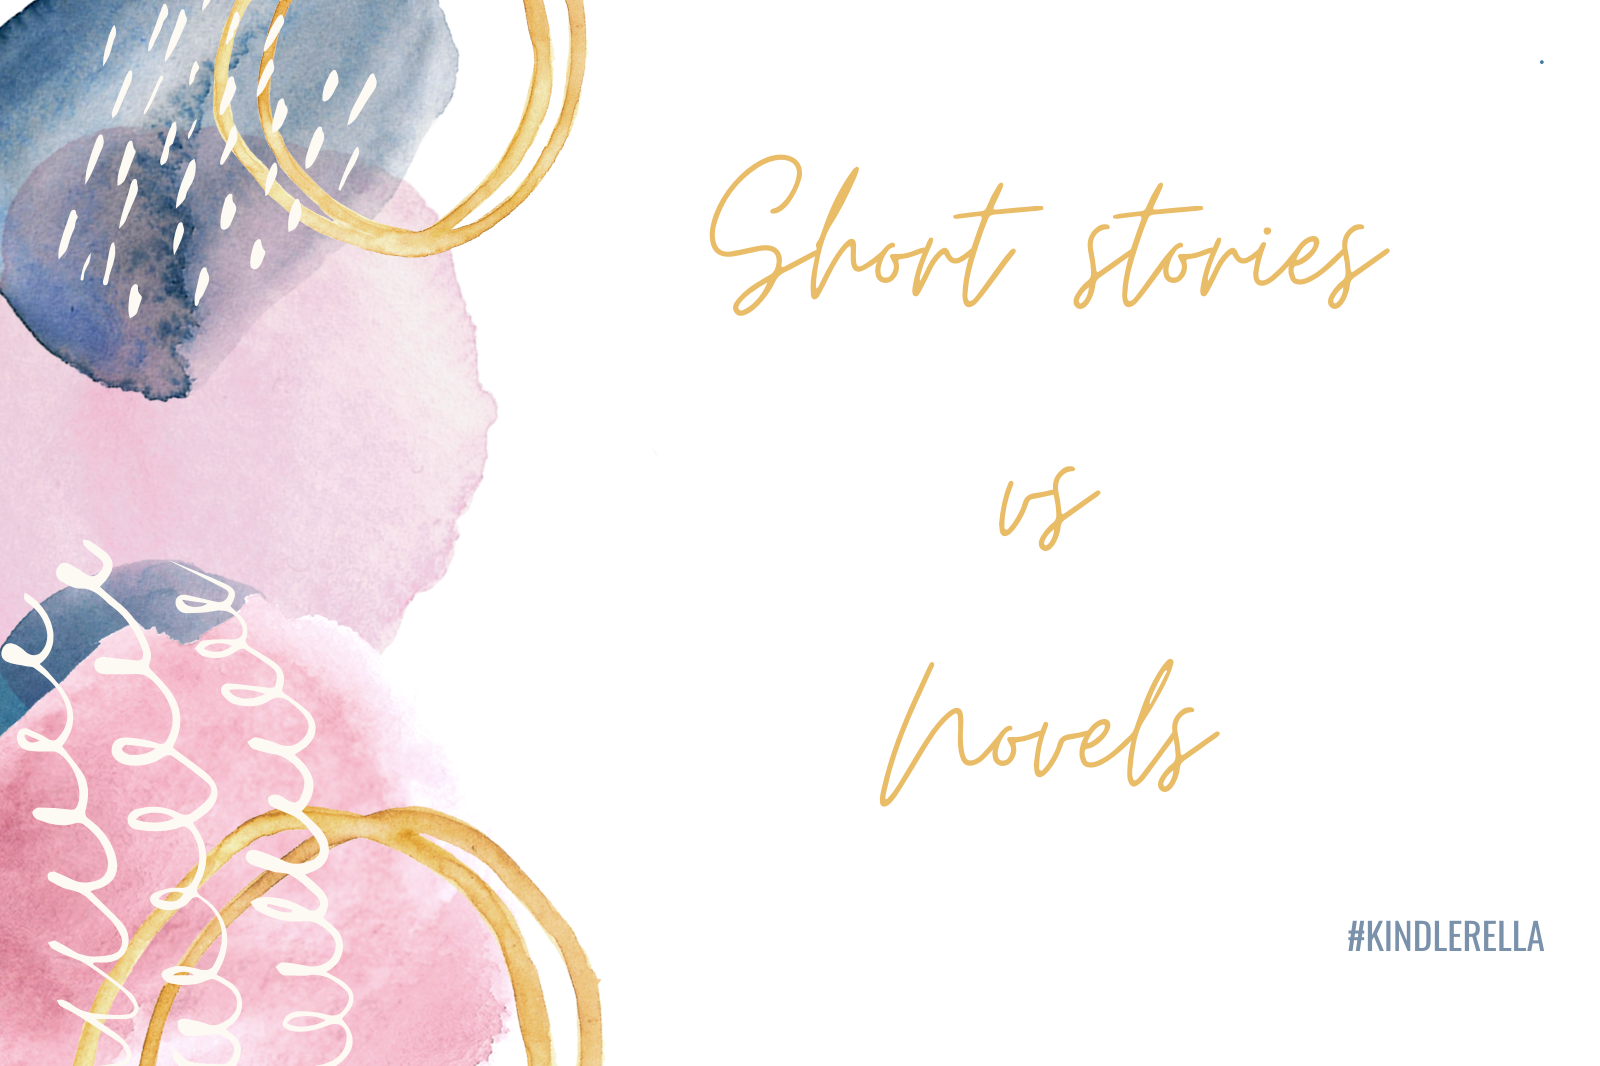 short stories vs novels